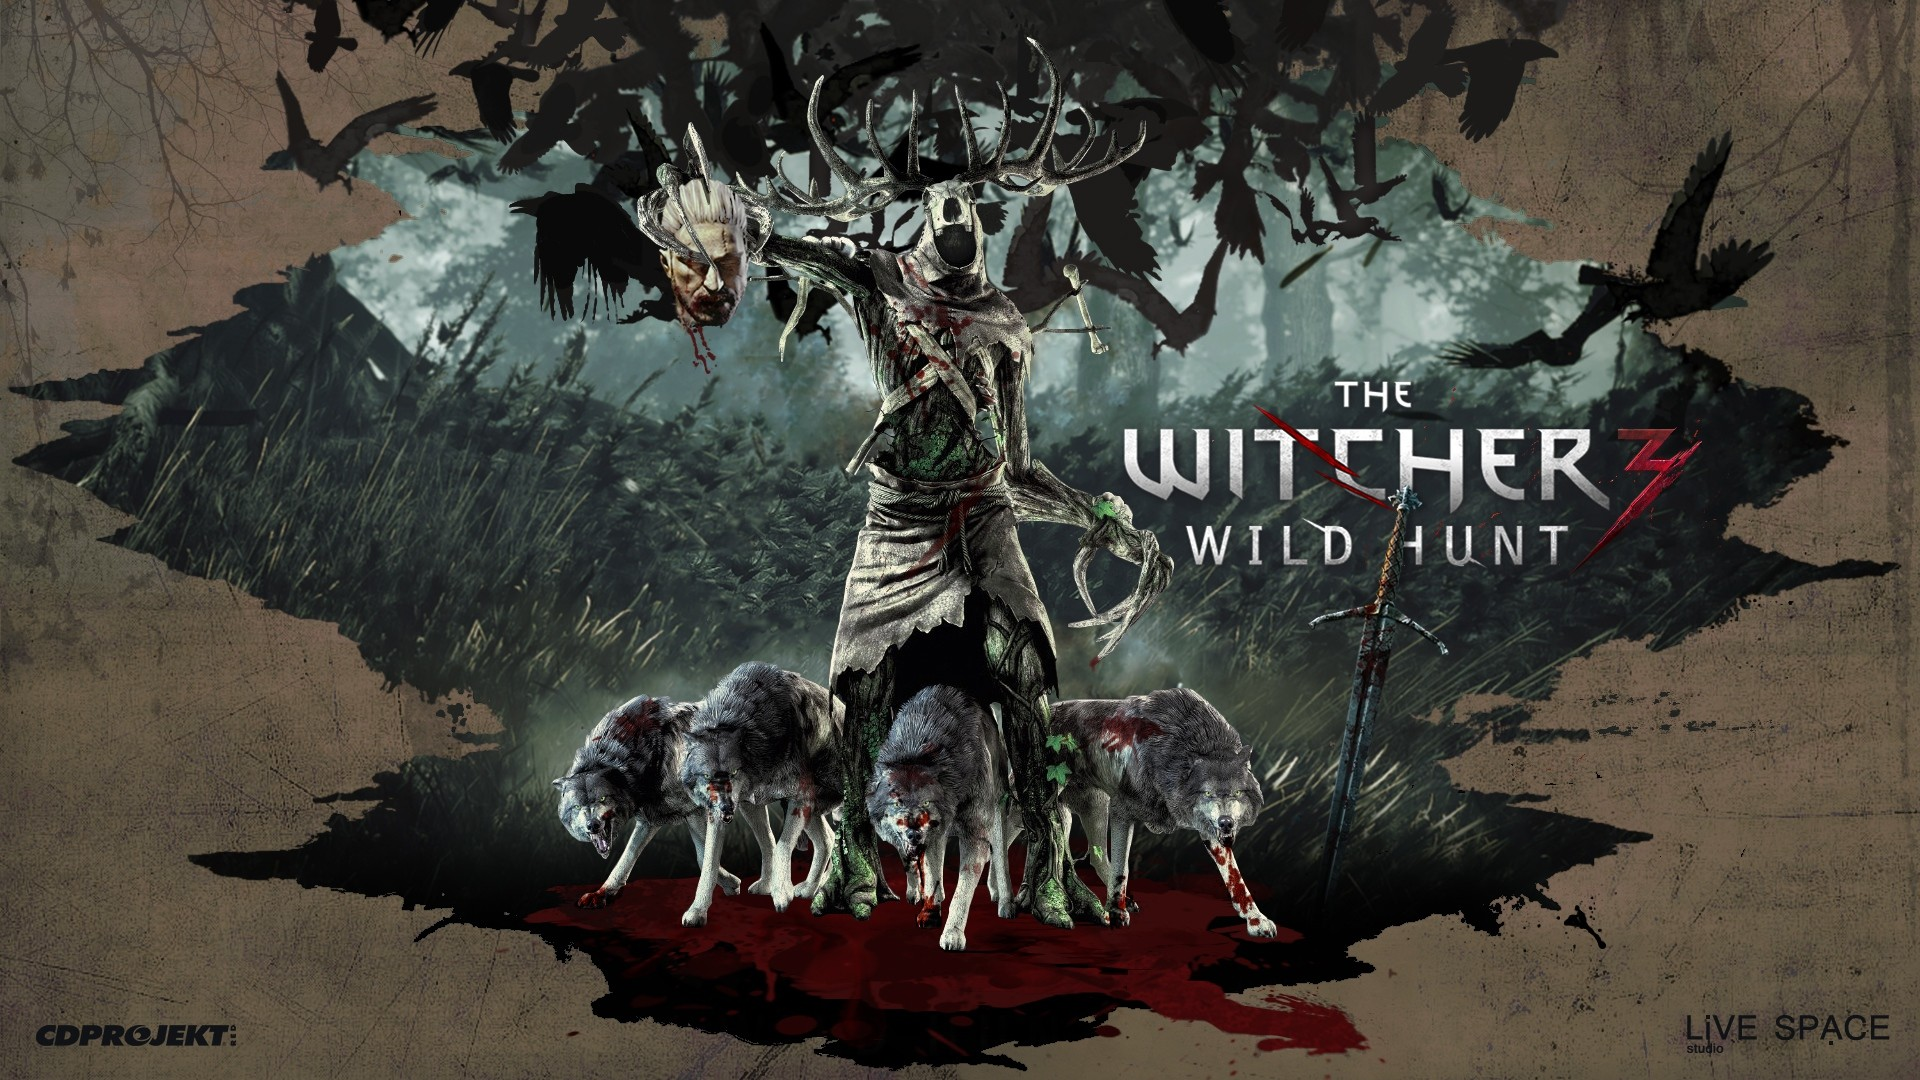 Wallpaper the witcher 3 wild hunt, art, wolves